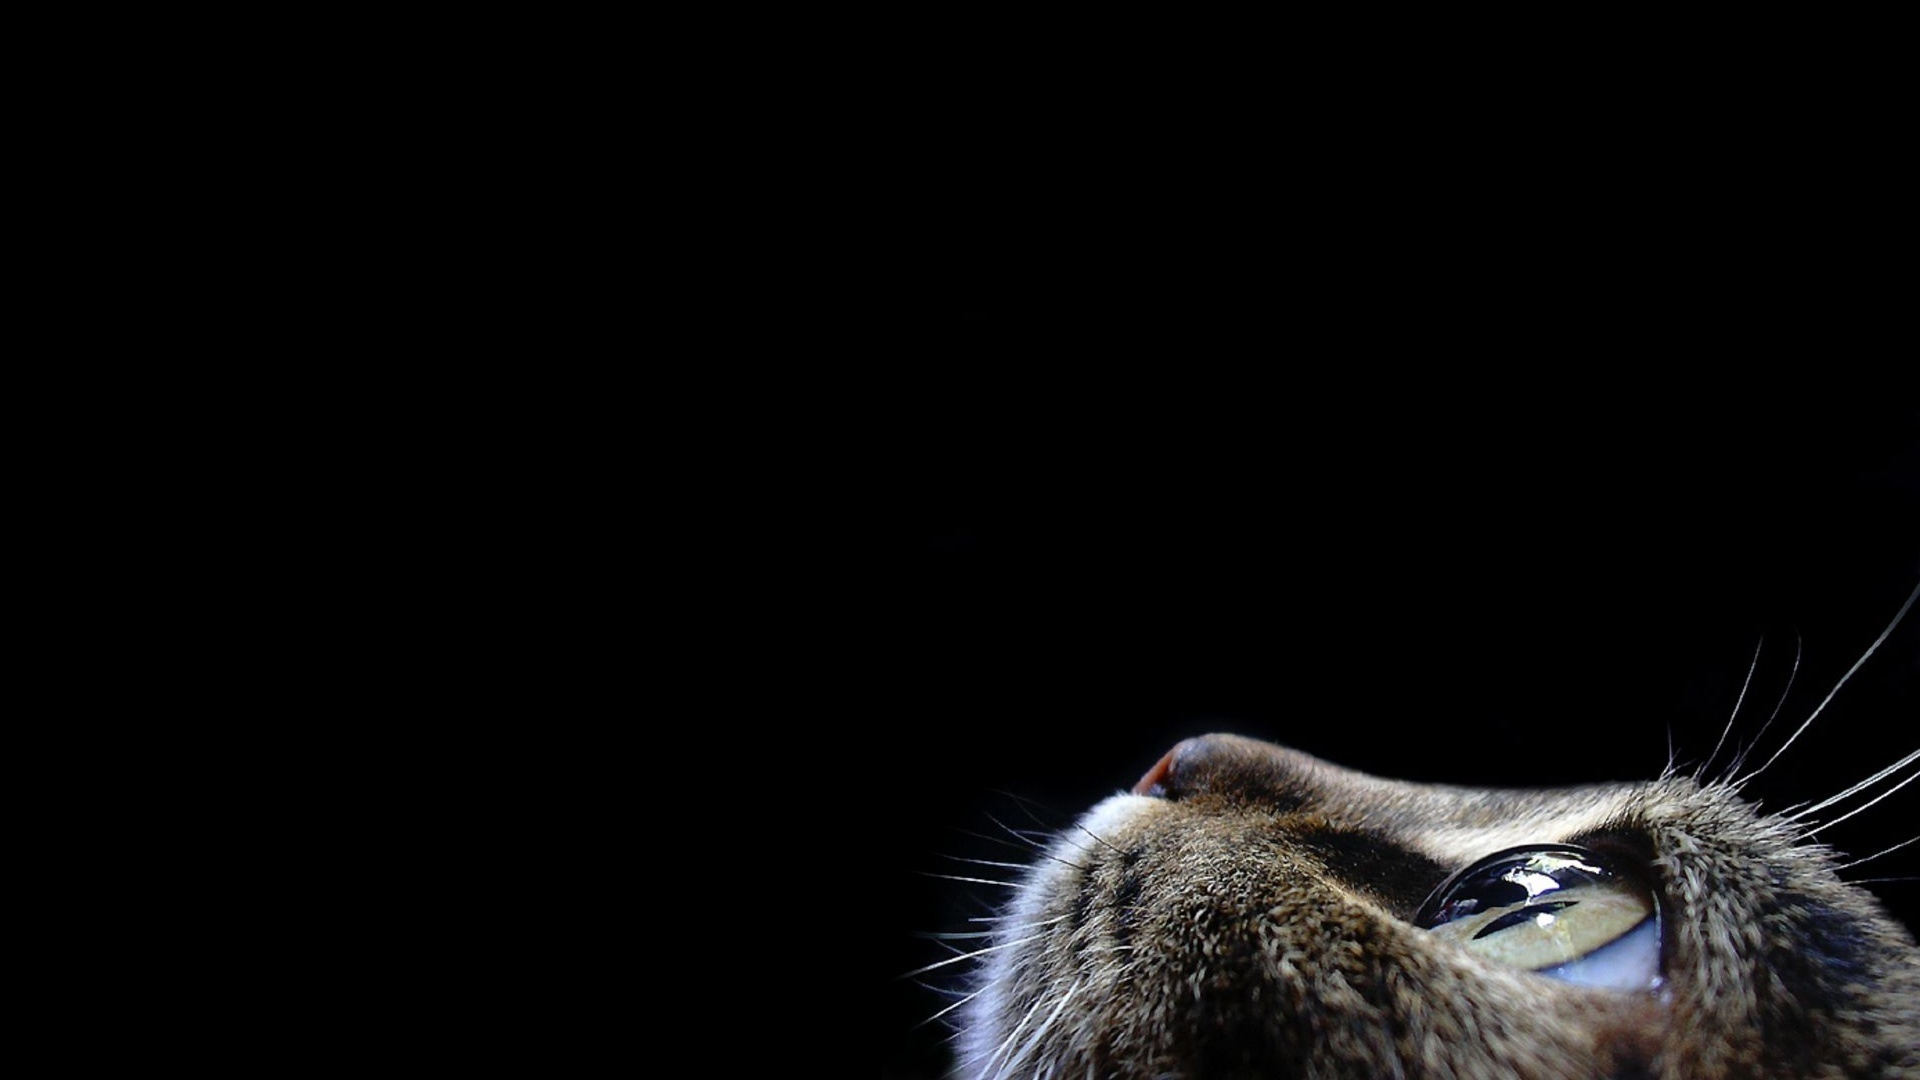 original wallpaper download: Cat looking up on black background - 1920x1080